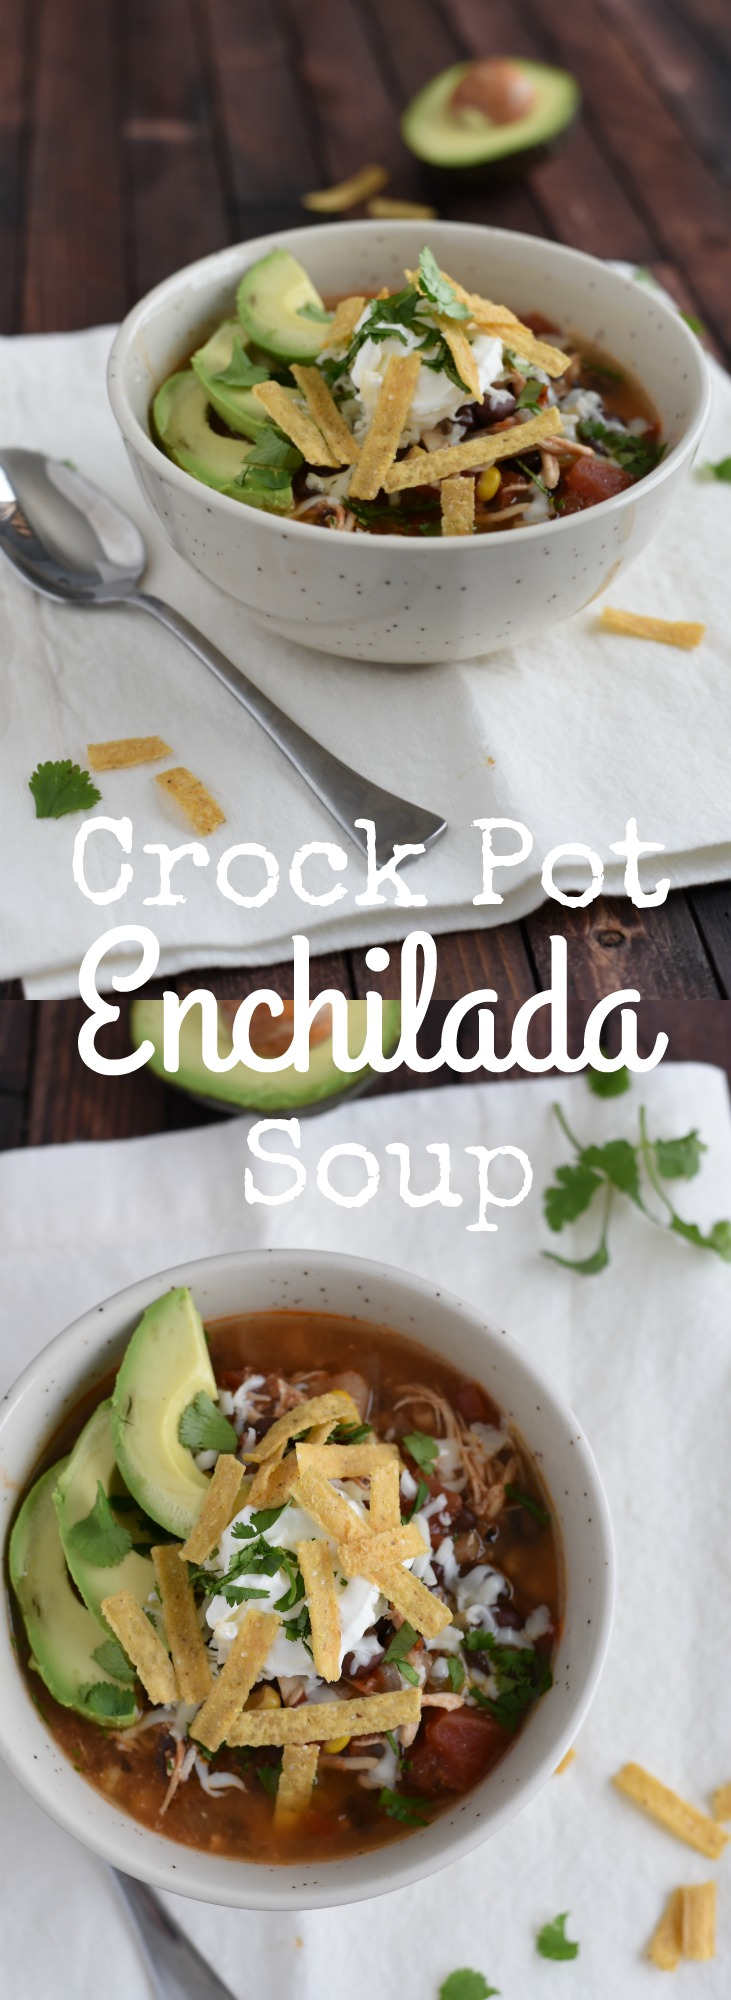 Dinner can't get easier than this slow cooker chicken enchilada soup - literal minutes of prep work, and amazing flavor! You won't believe how easy this is!